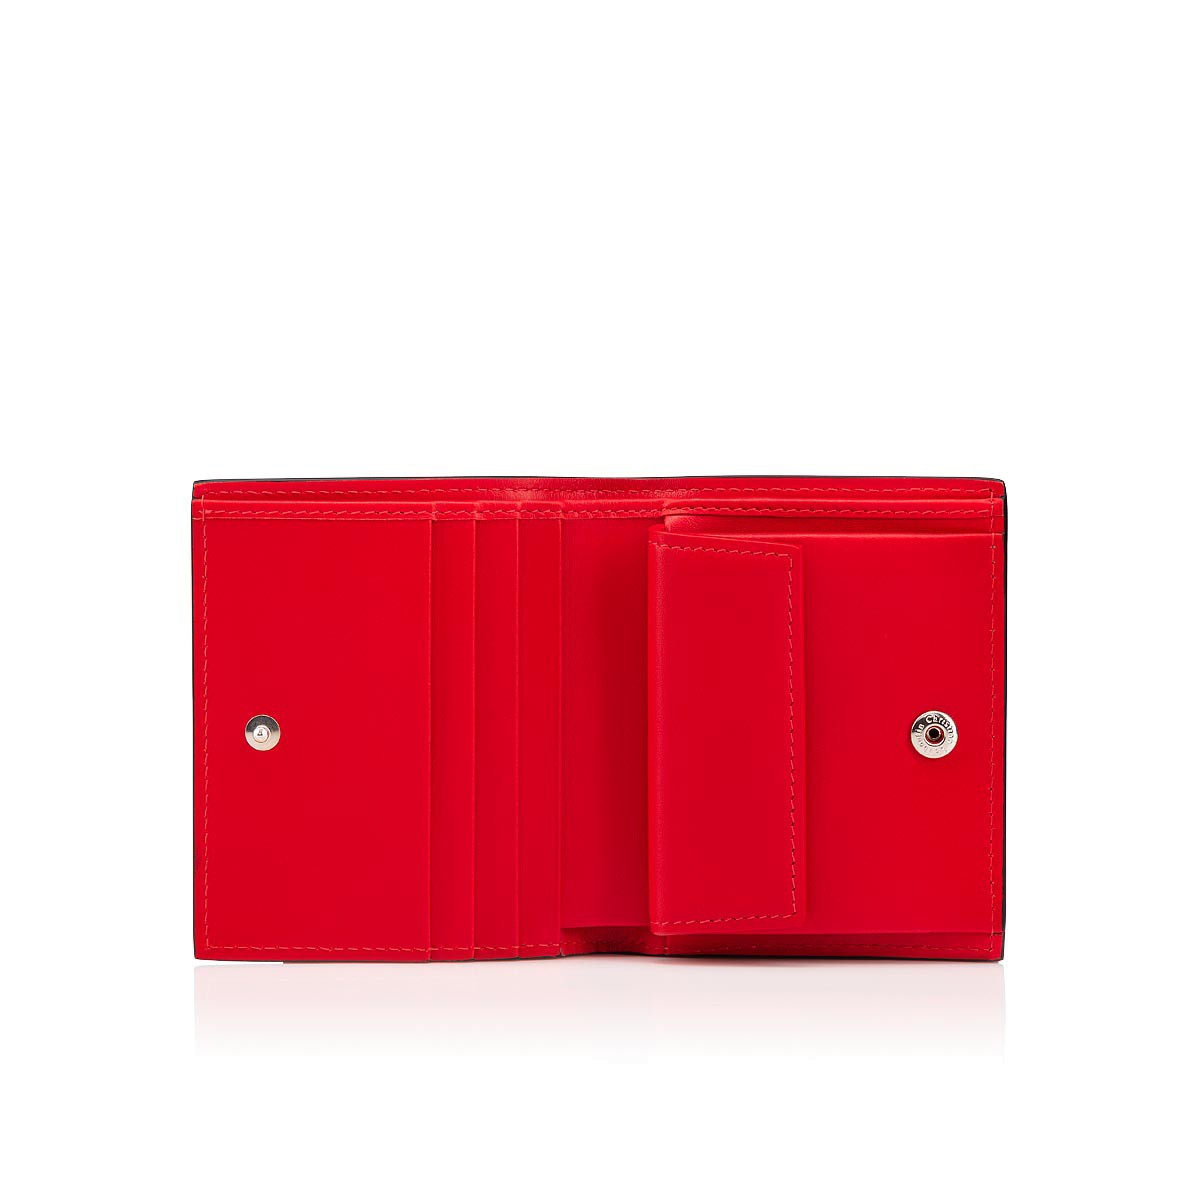 Small Leather Goods - M Paros - Christian Louboutin